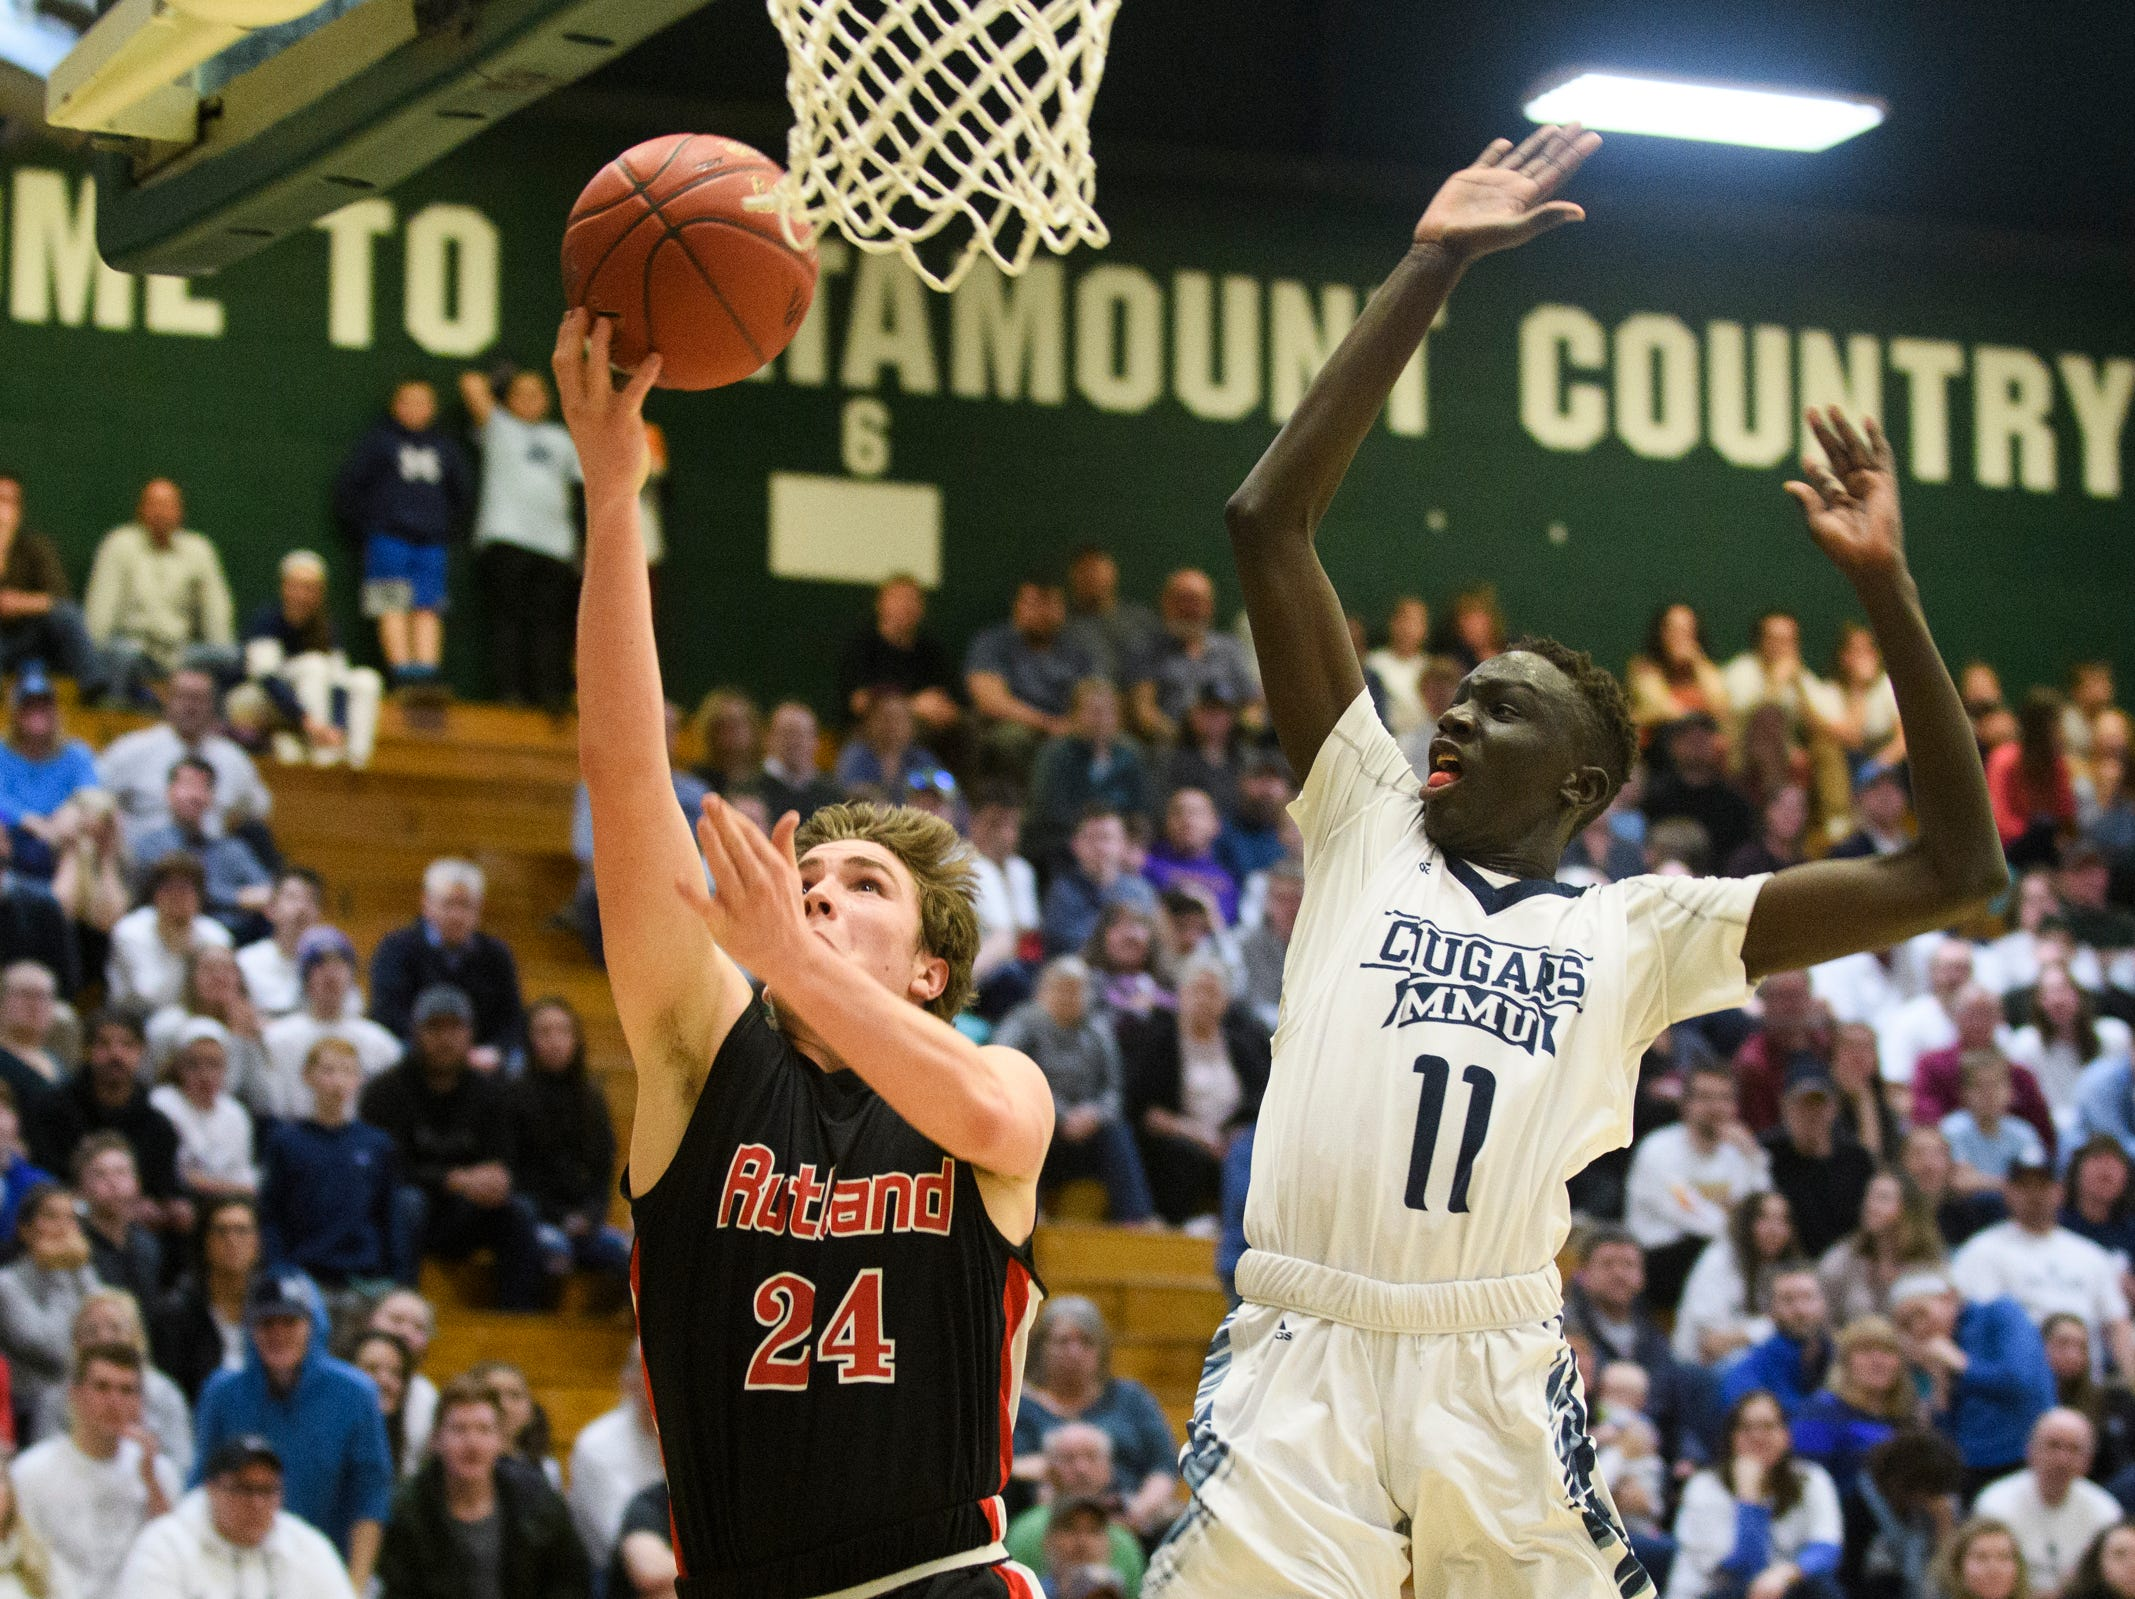 Rutland's Jacob Evans (24) leaps past MMU's Taylor Bowen (11) for a lay up during the boys DI semi final basketball game between the Rutland Raiders and the Mount Mansfield Cougars at Patrick Gym on Monday night March 11, 2019 in Burlington, Vermont.